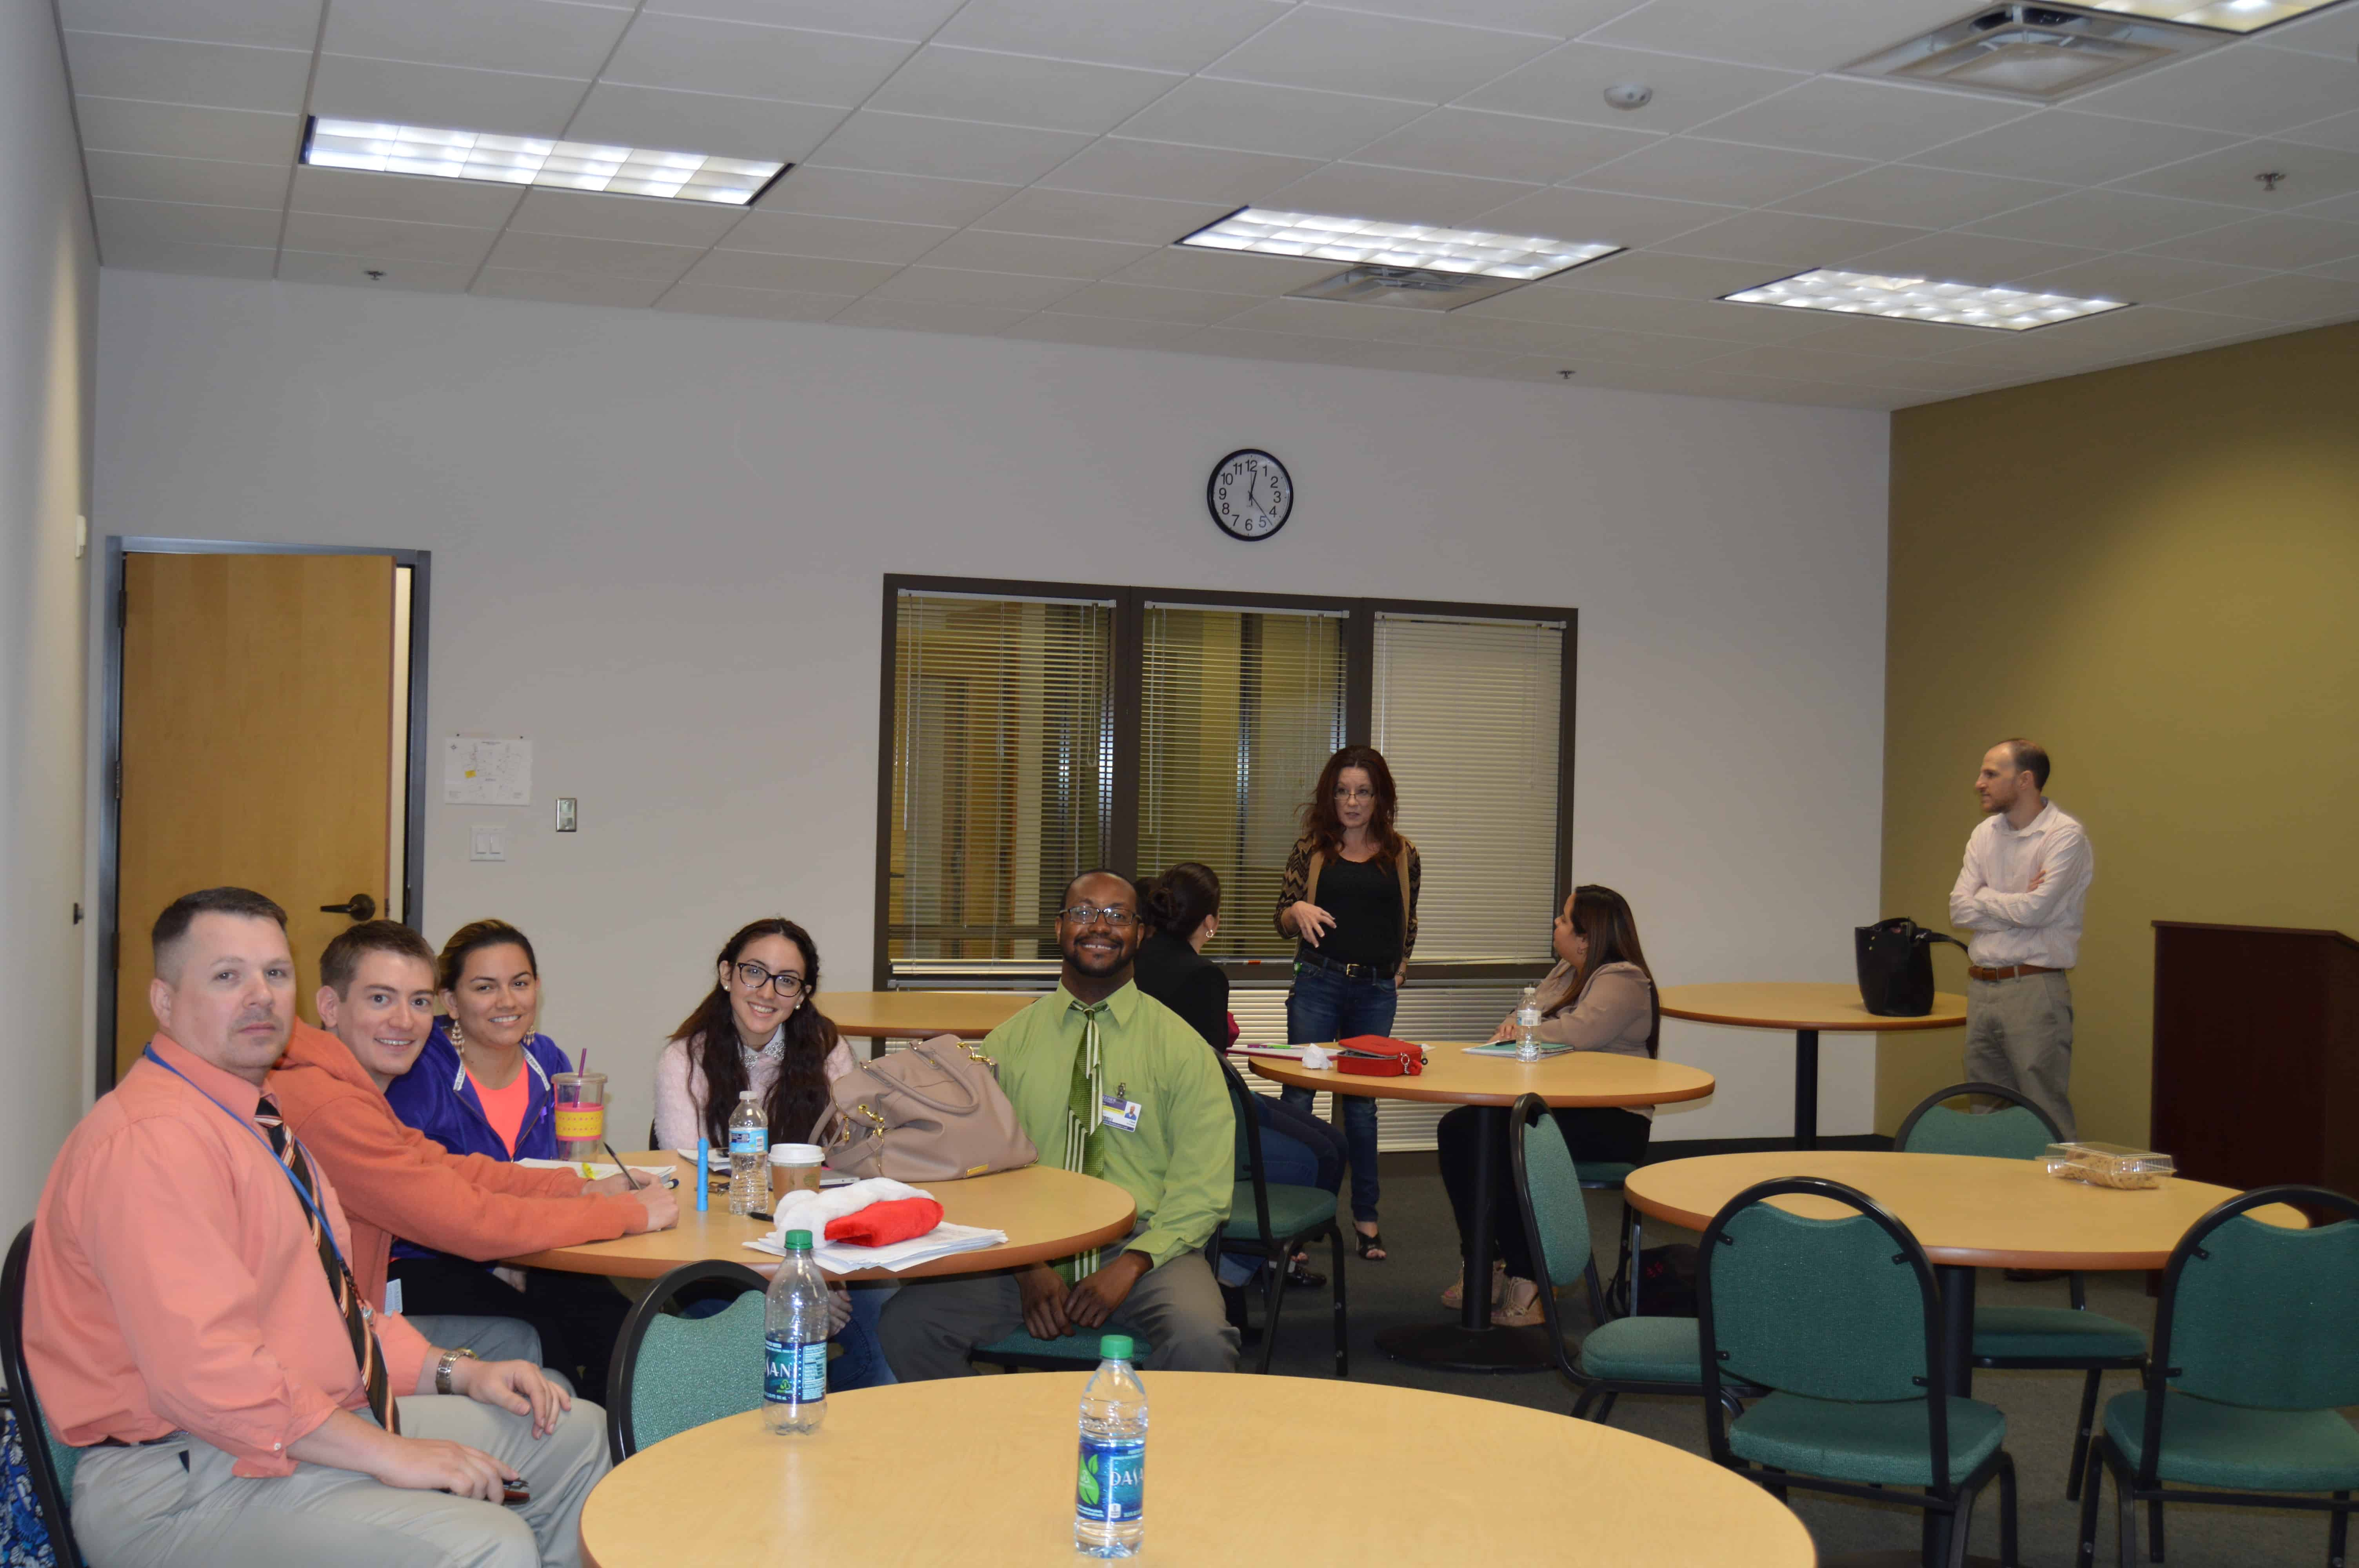 Tampa's Biotechnology Students Learn about Clinical Trials